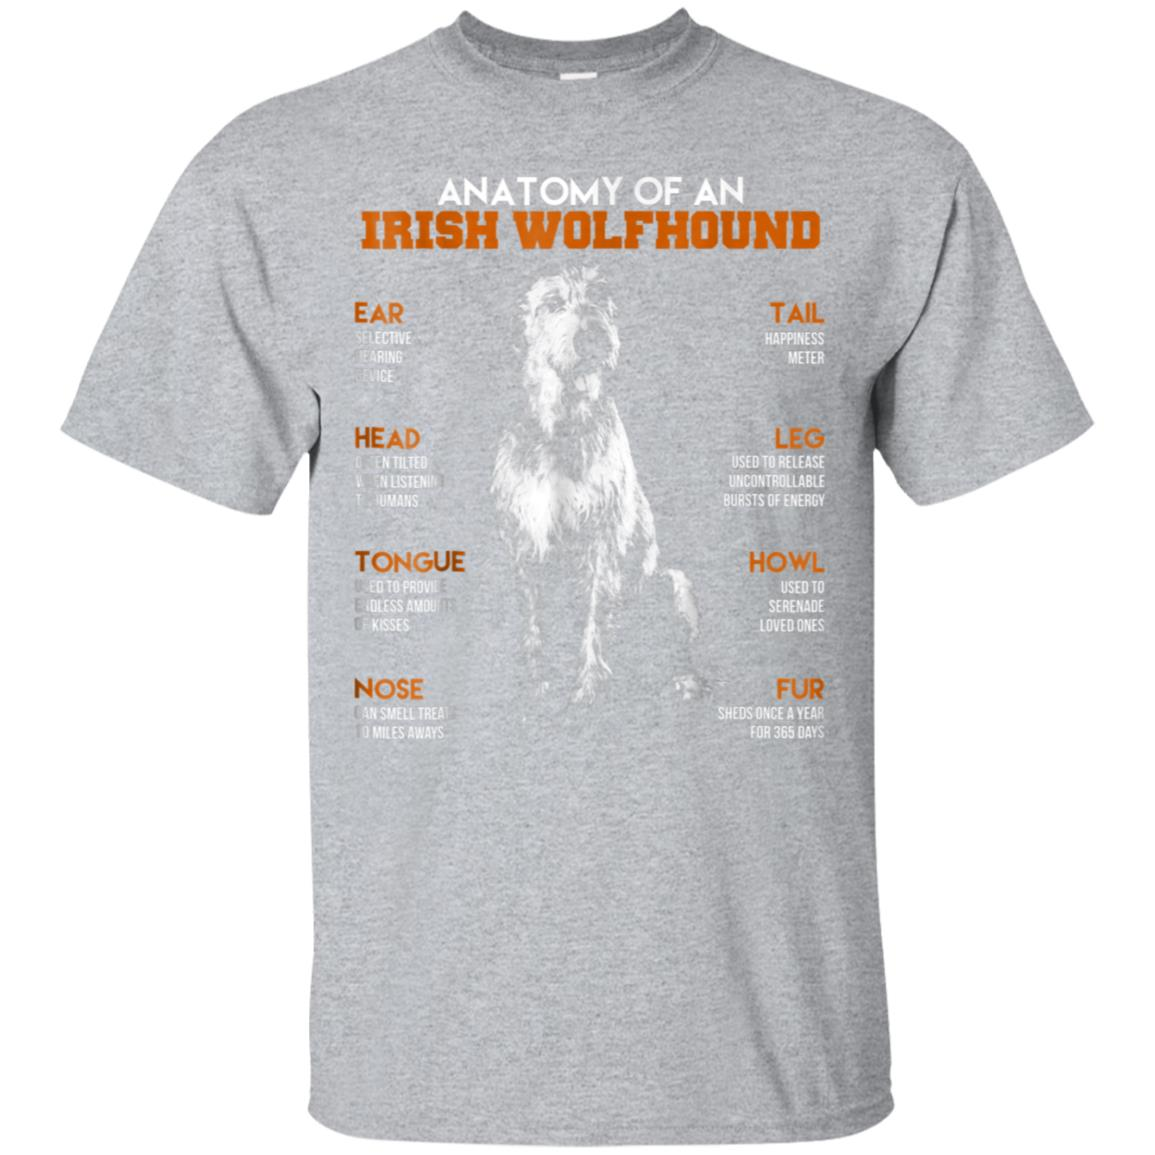 Anatomy Of An Irish Wolfhound Dogs T Shirt Funny Gift 99promocode